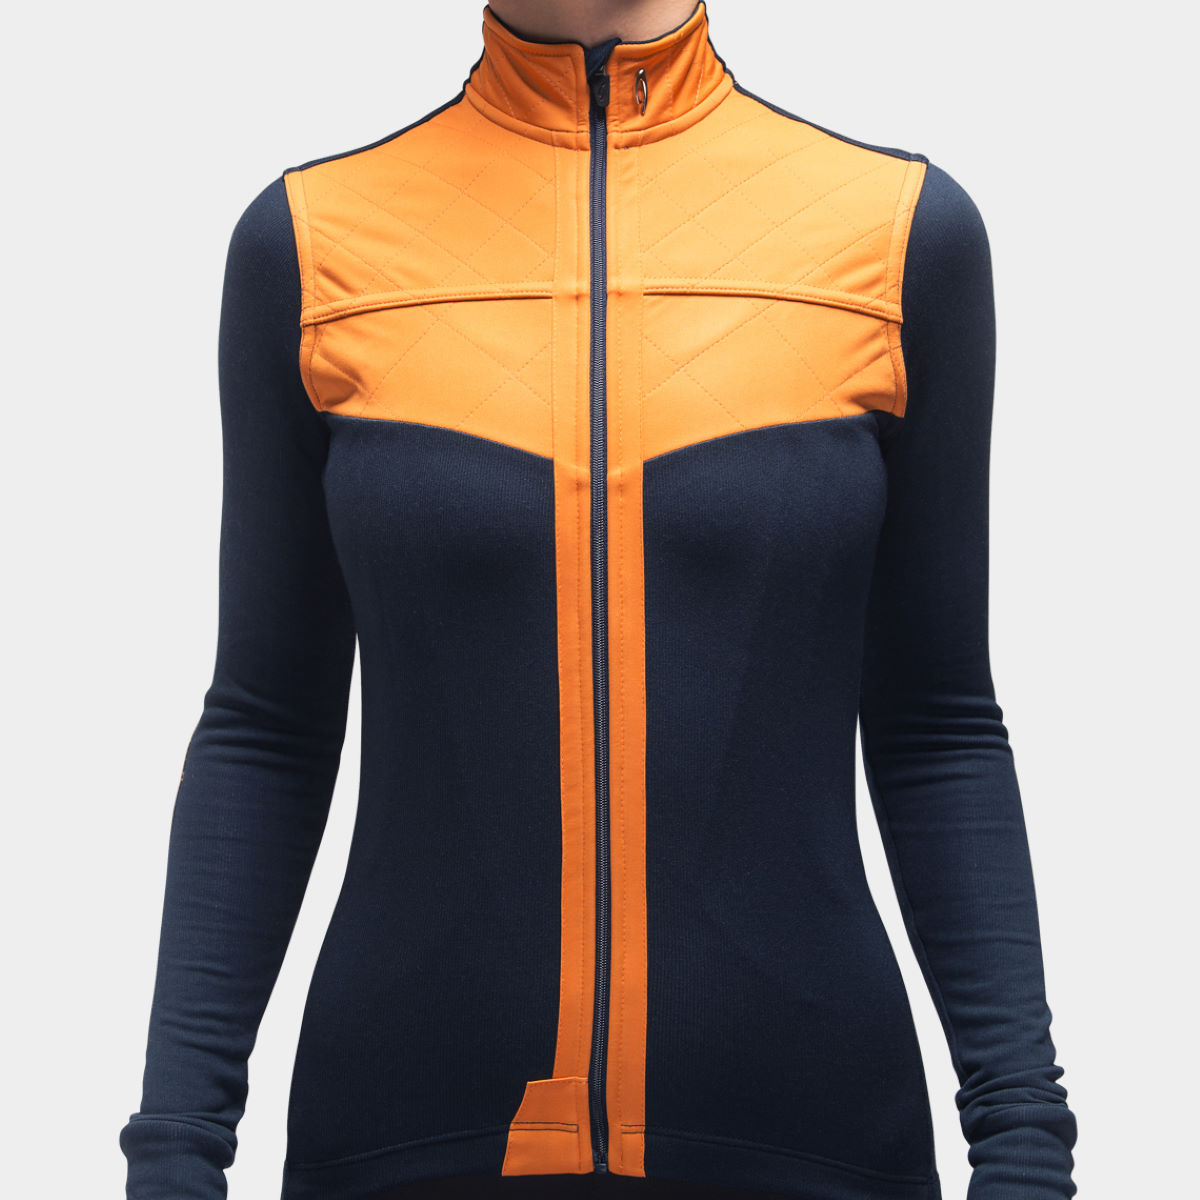 Isadore Women's Long Sleeve Shield Jersey - Maillots